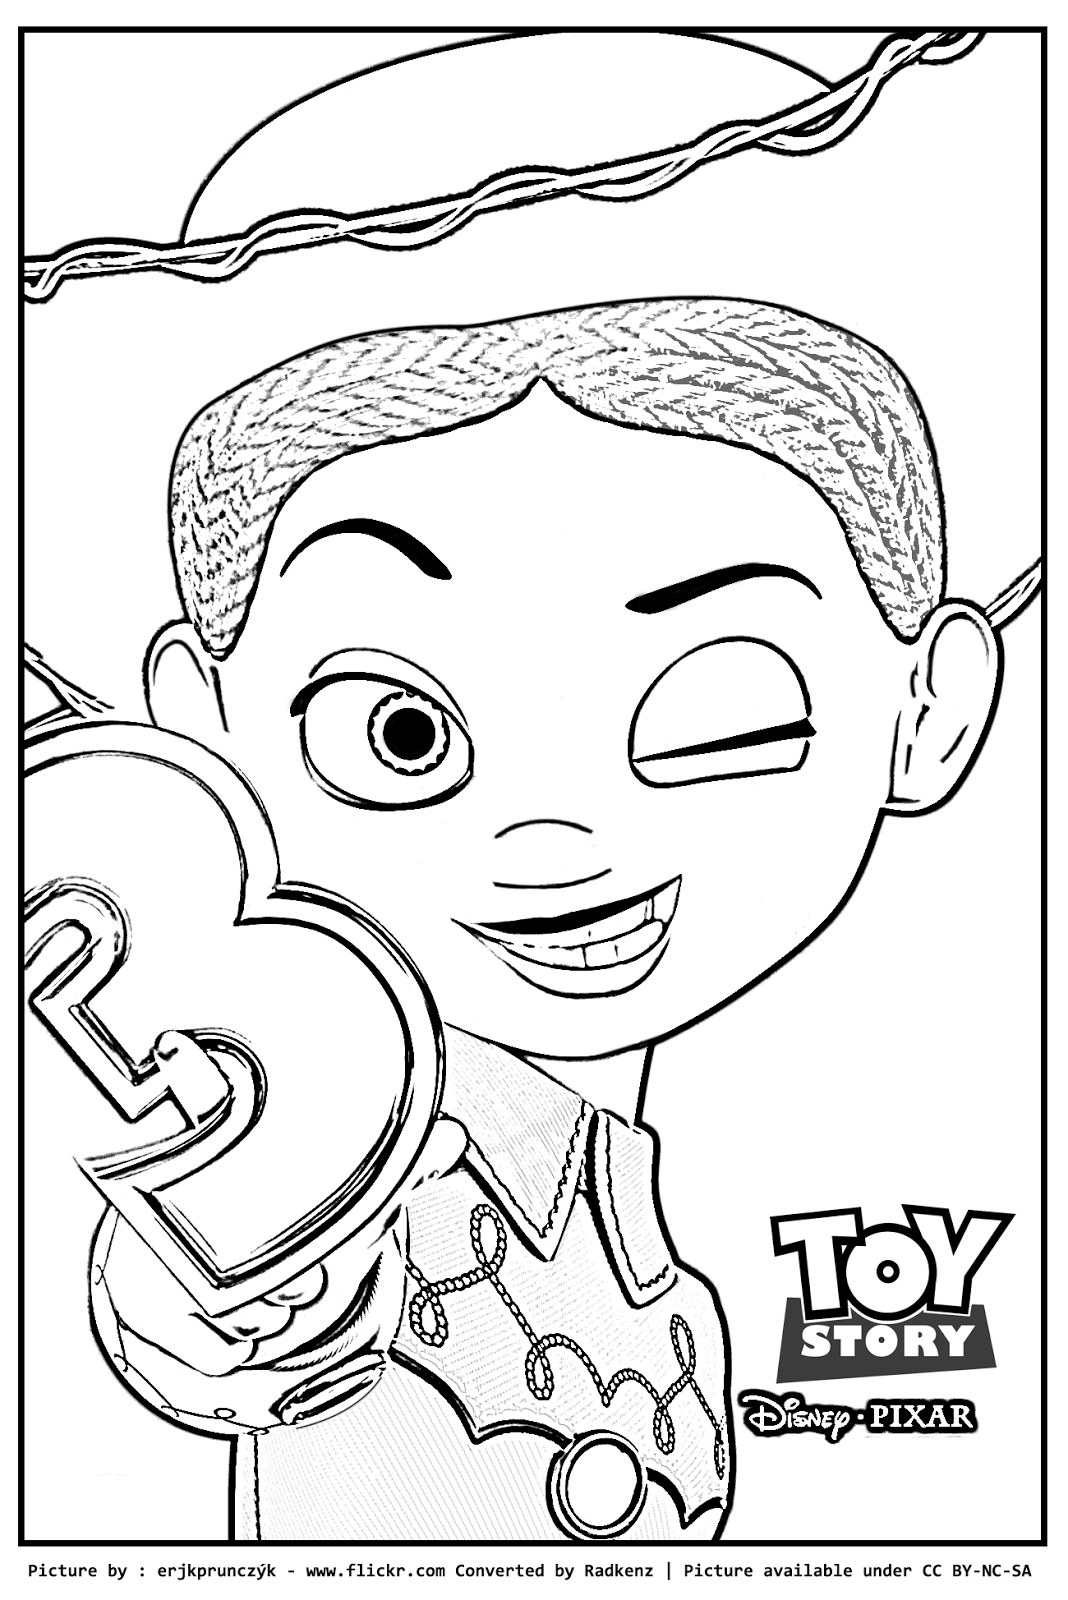 toy story 2 jessie coloring pages coloring home